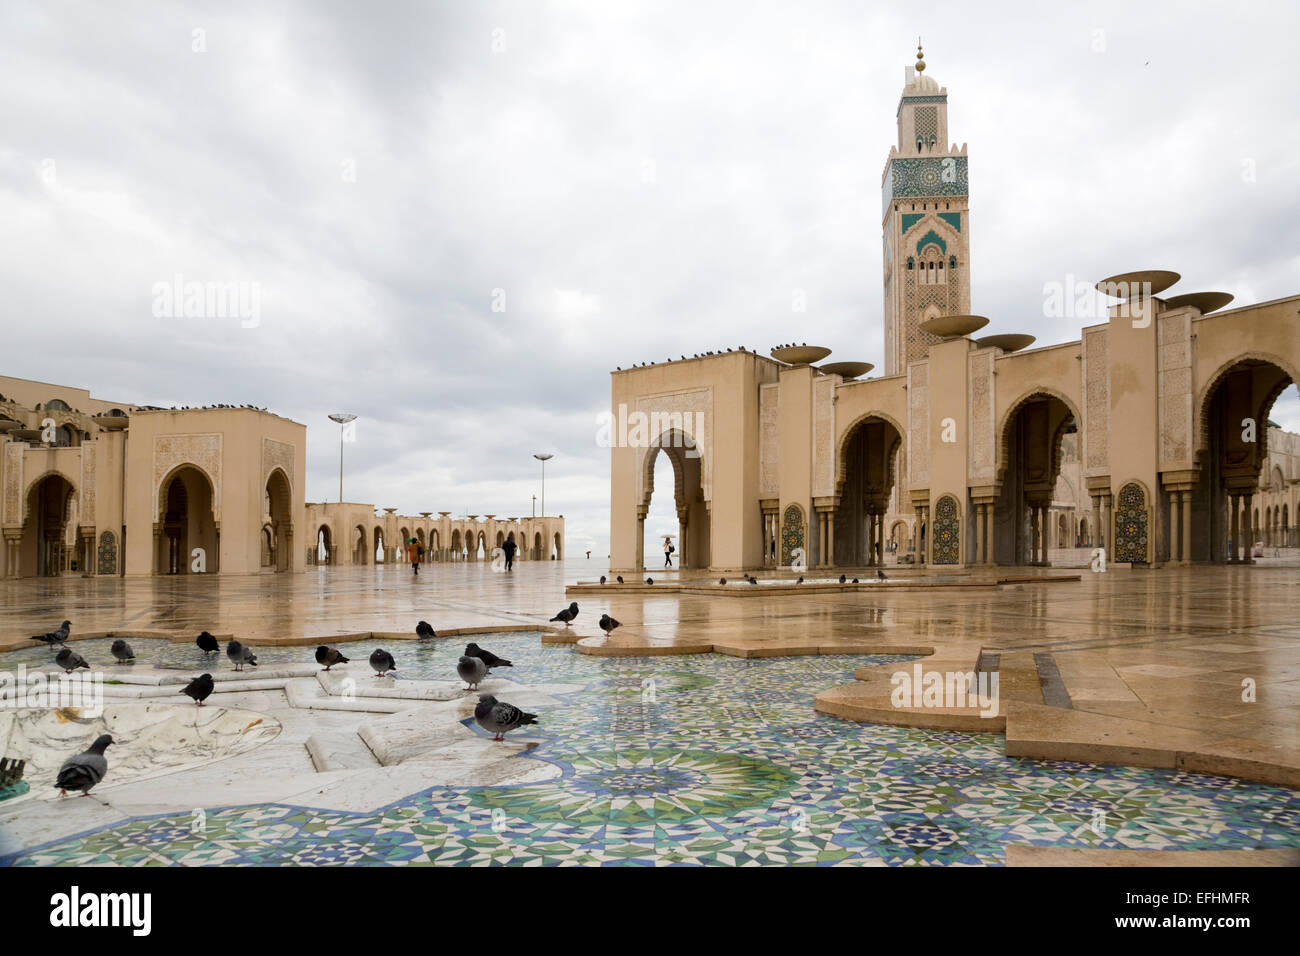 Pigeons in front of the Hassan II mosque, Casablanca, Morocco - Stock Image